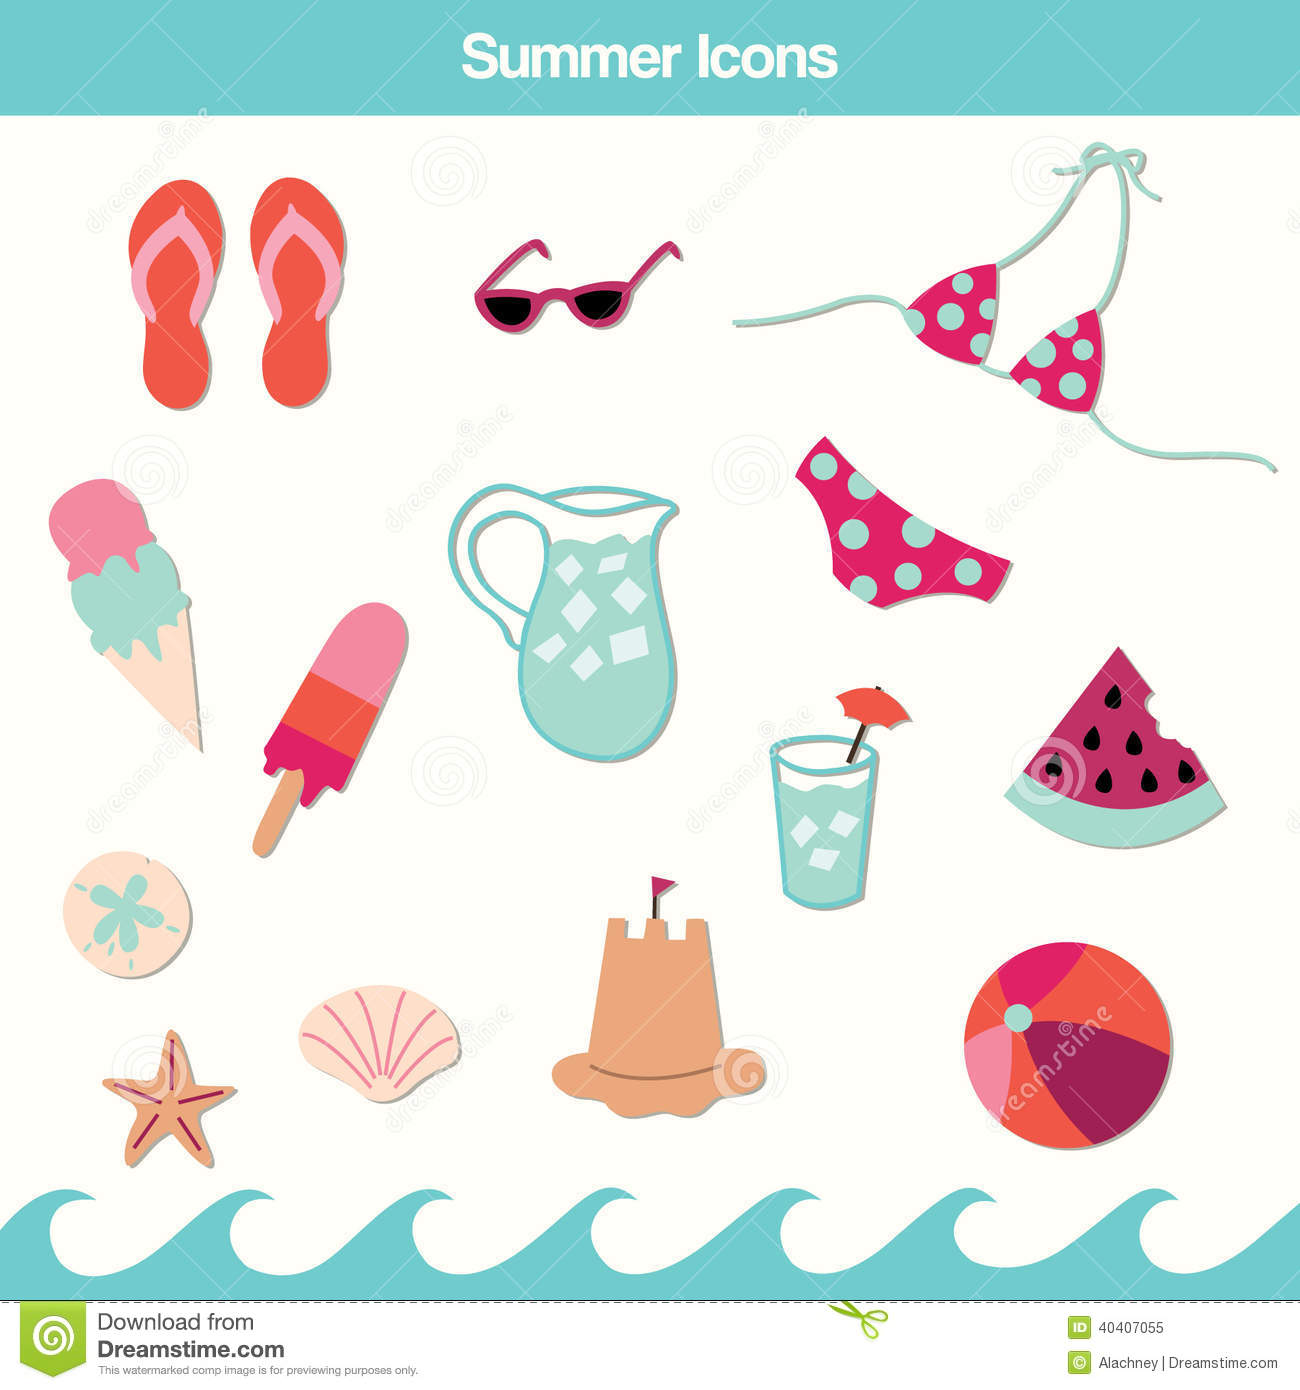 summer vector illustraitons - photo #44